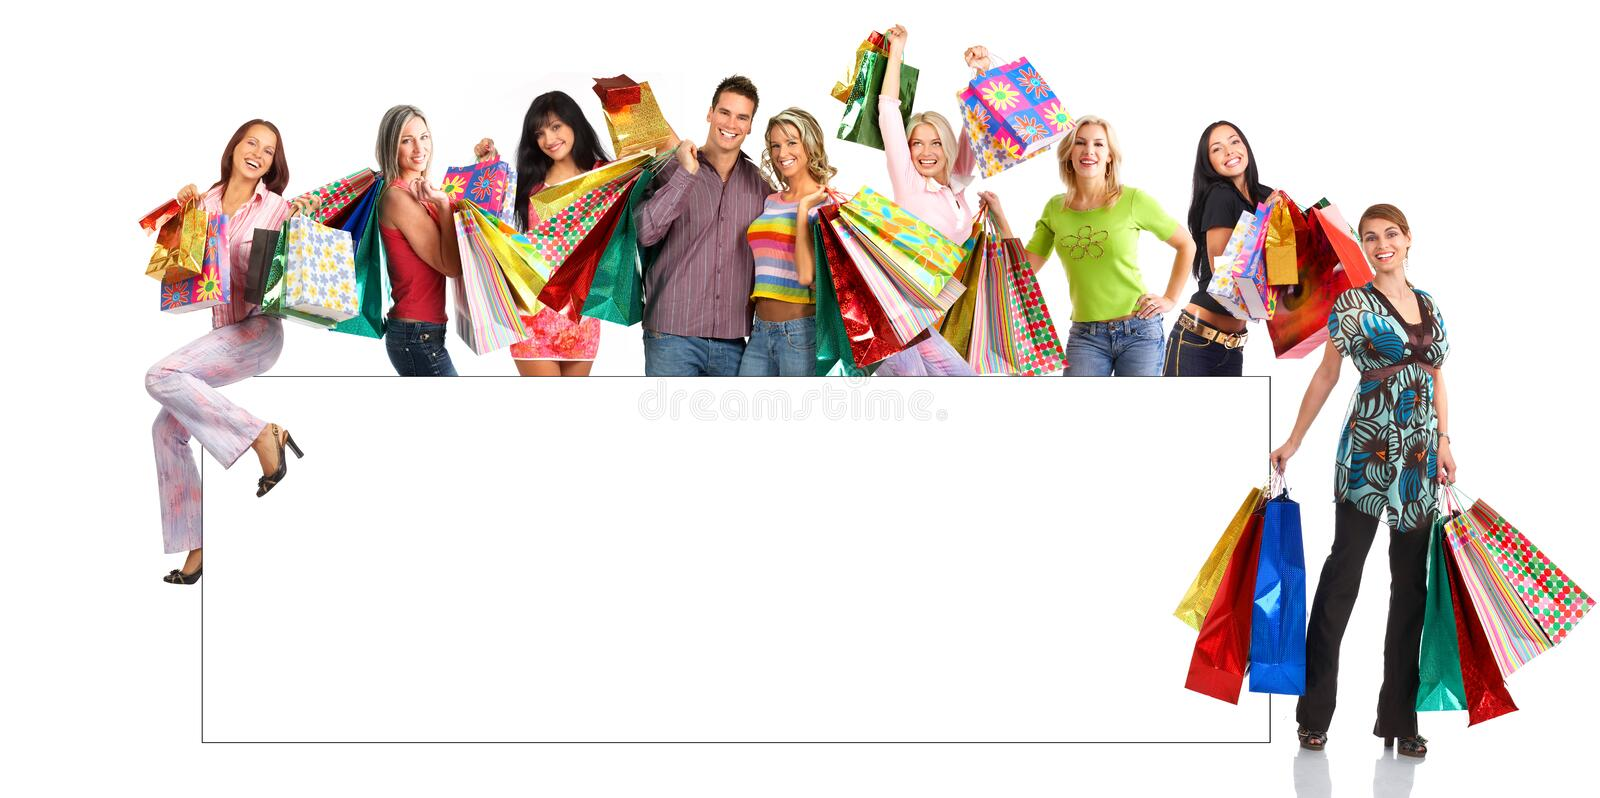 Happy shopping people royalty free stock photos